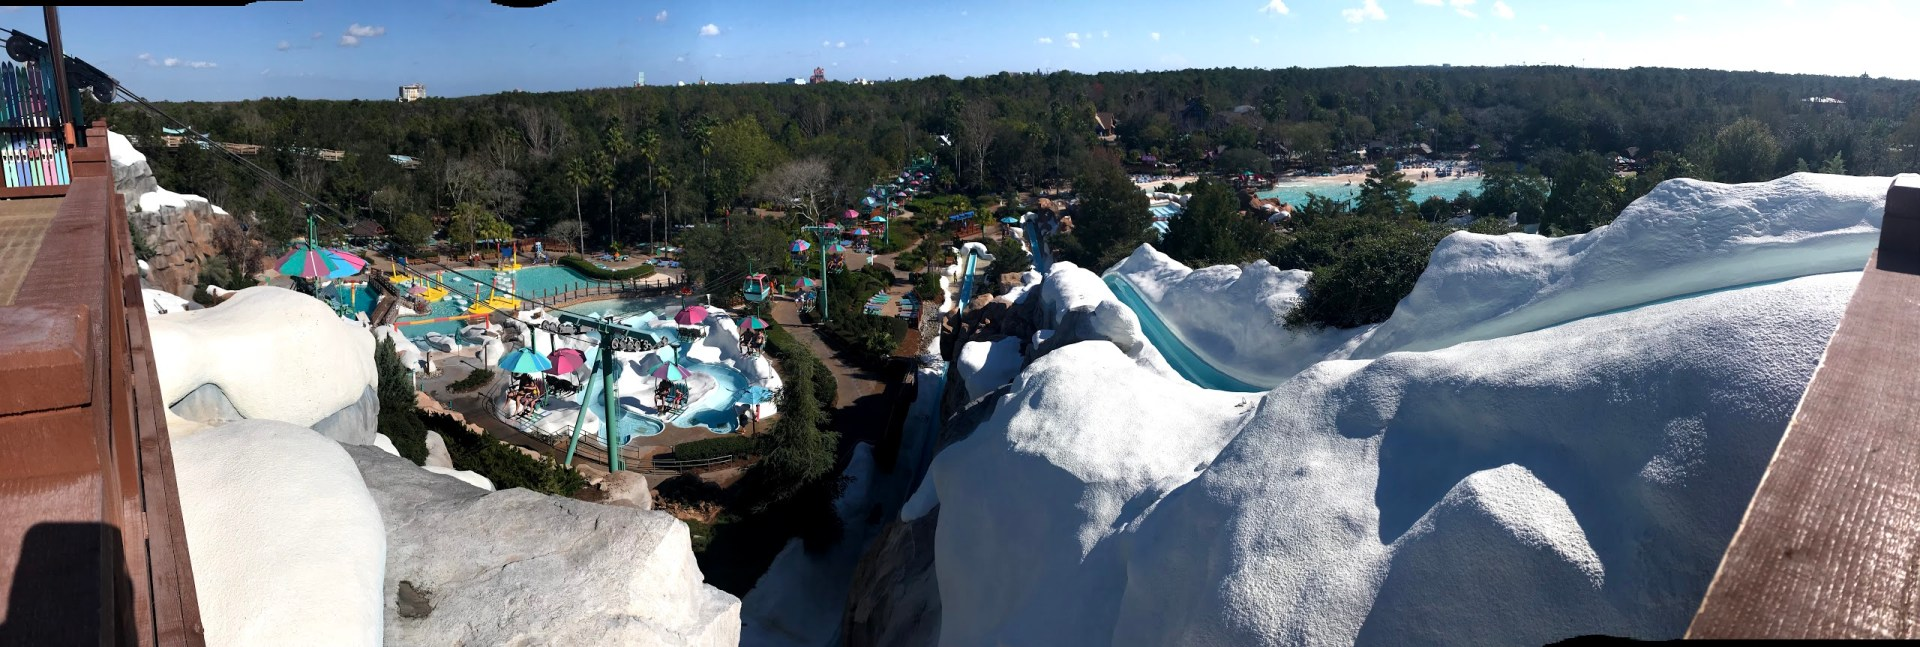 blizzard-beach-park-view